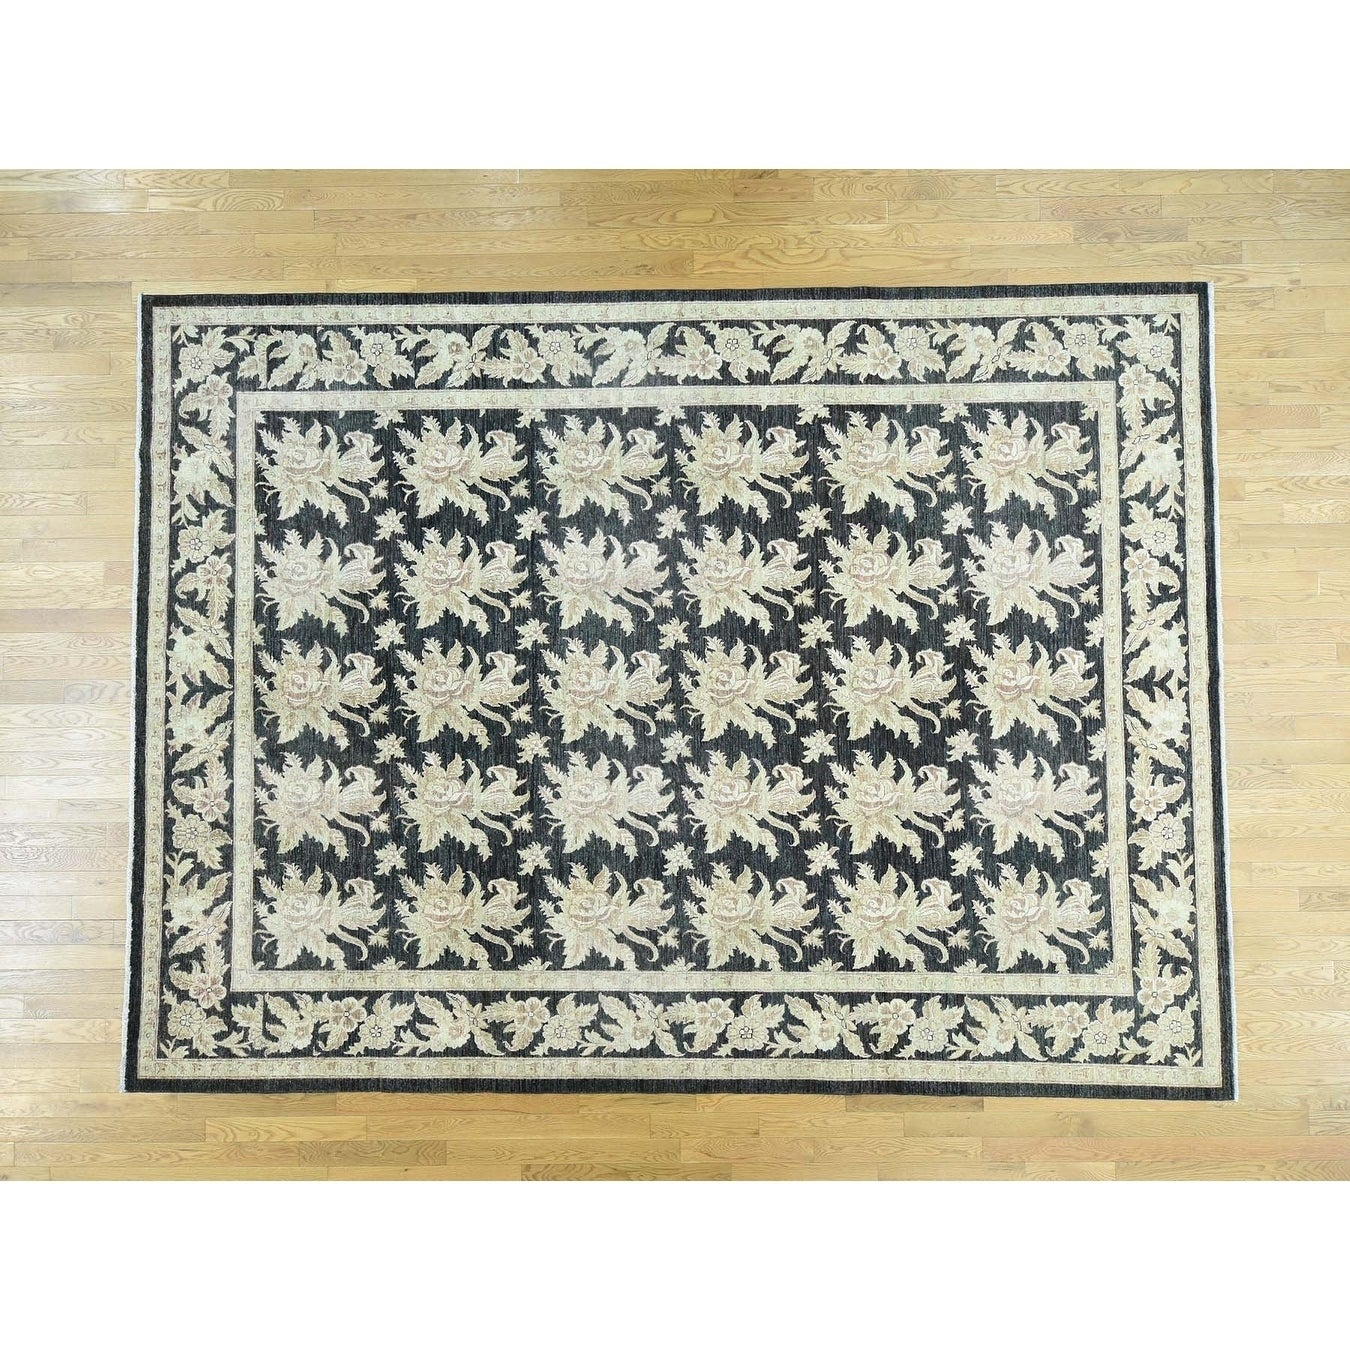 Hand Knotted Black Oushak And Peshawar with Wool Oriental Rug - 91 x 124